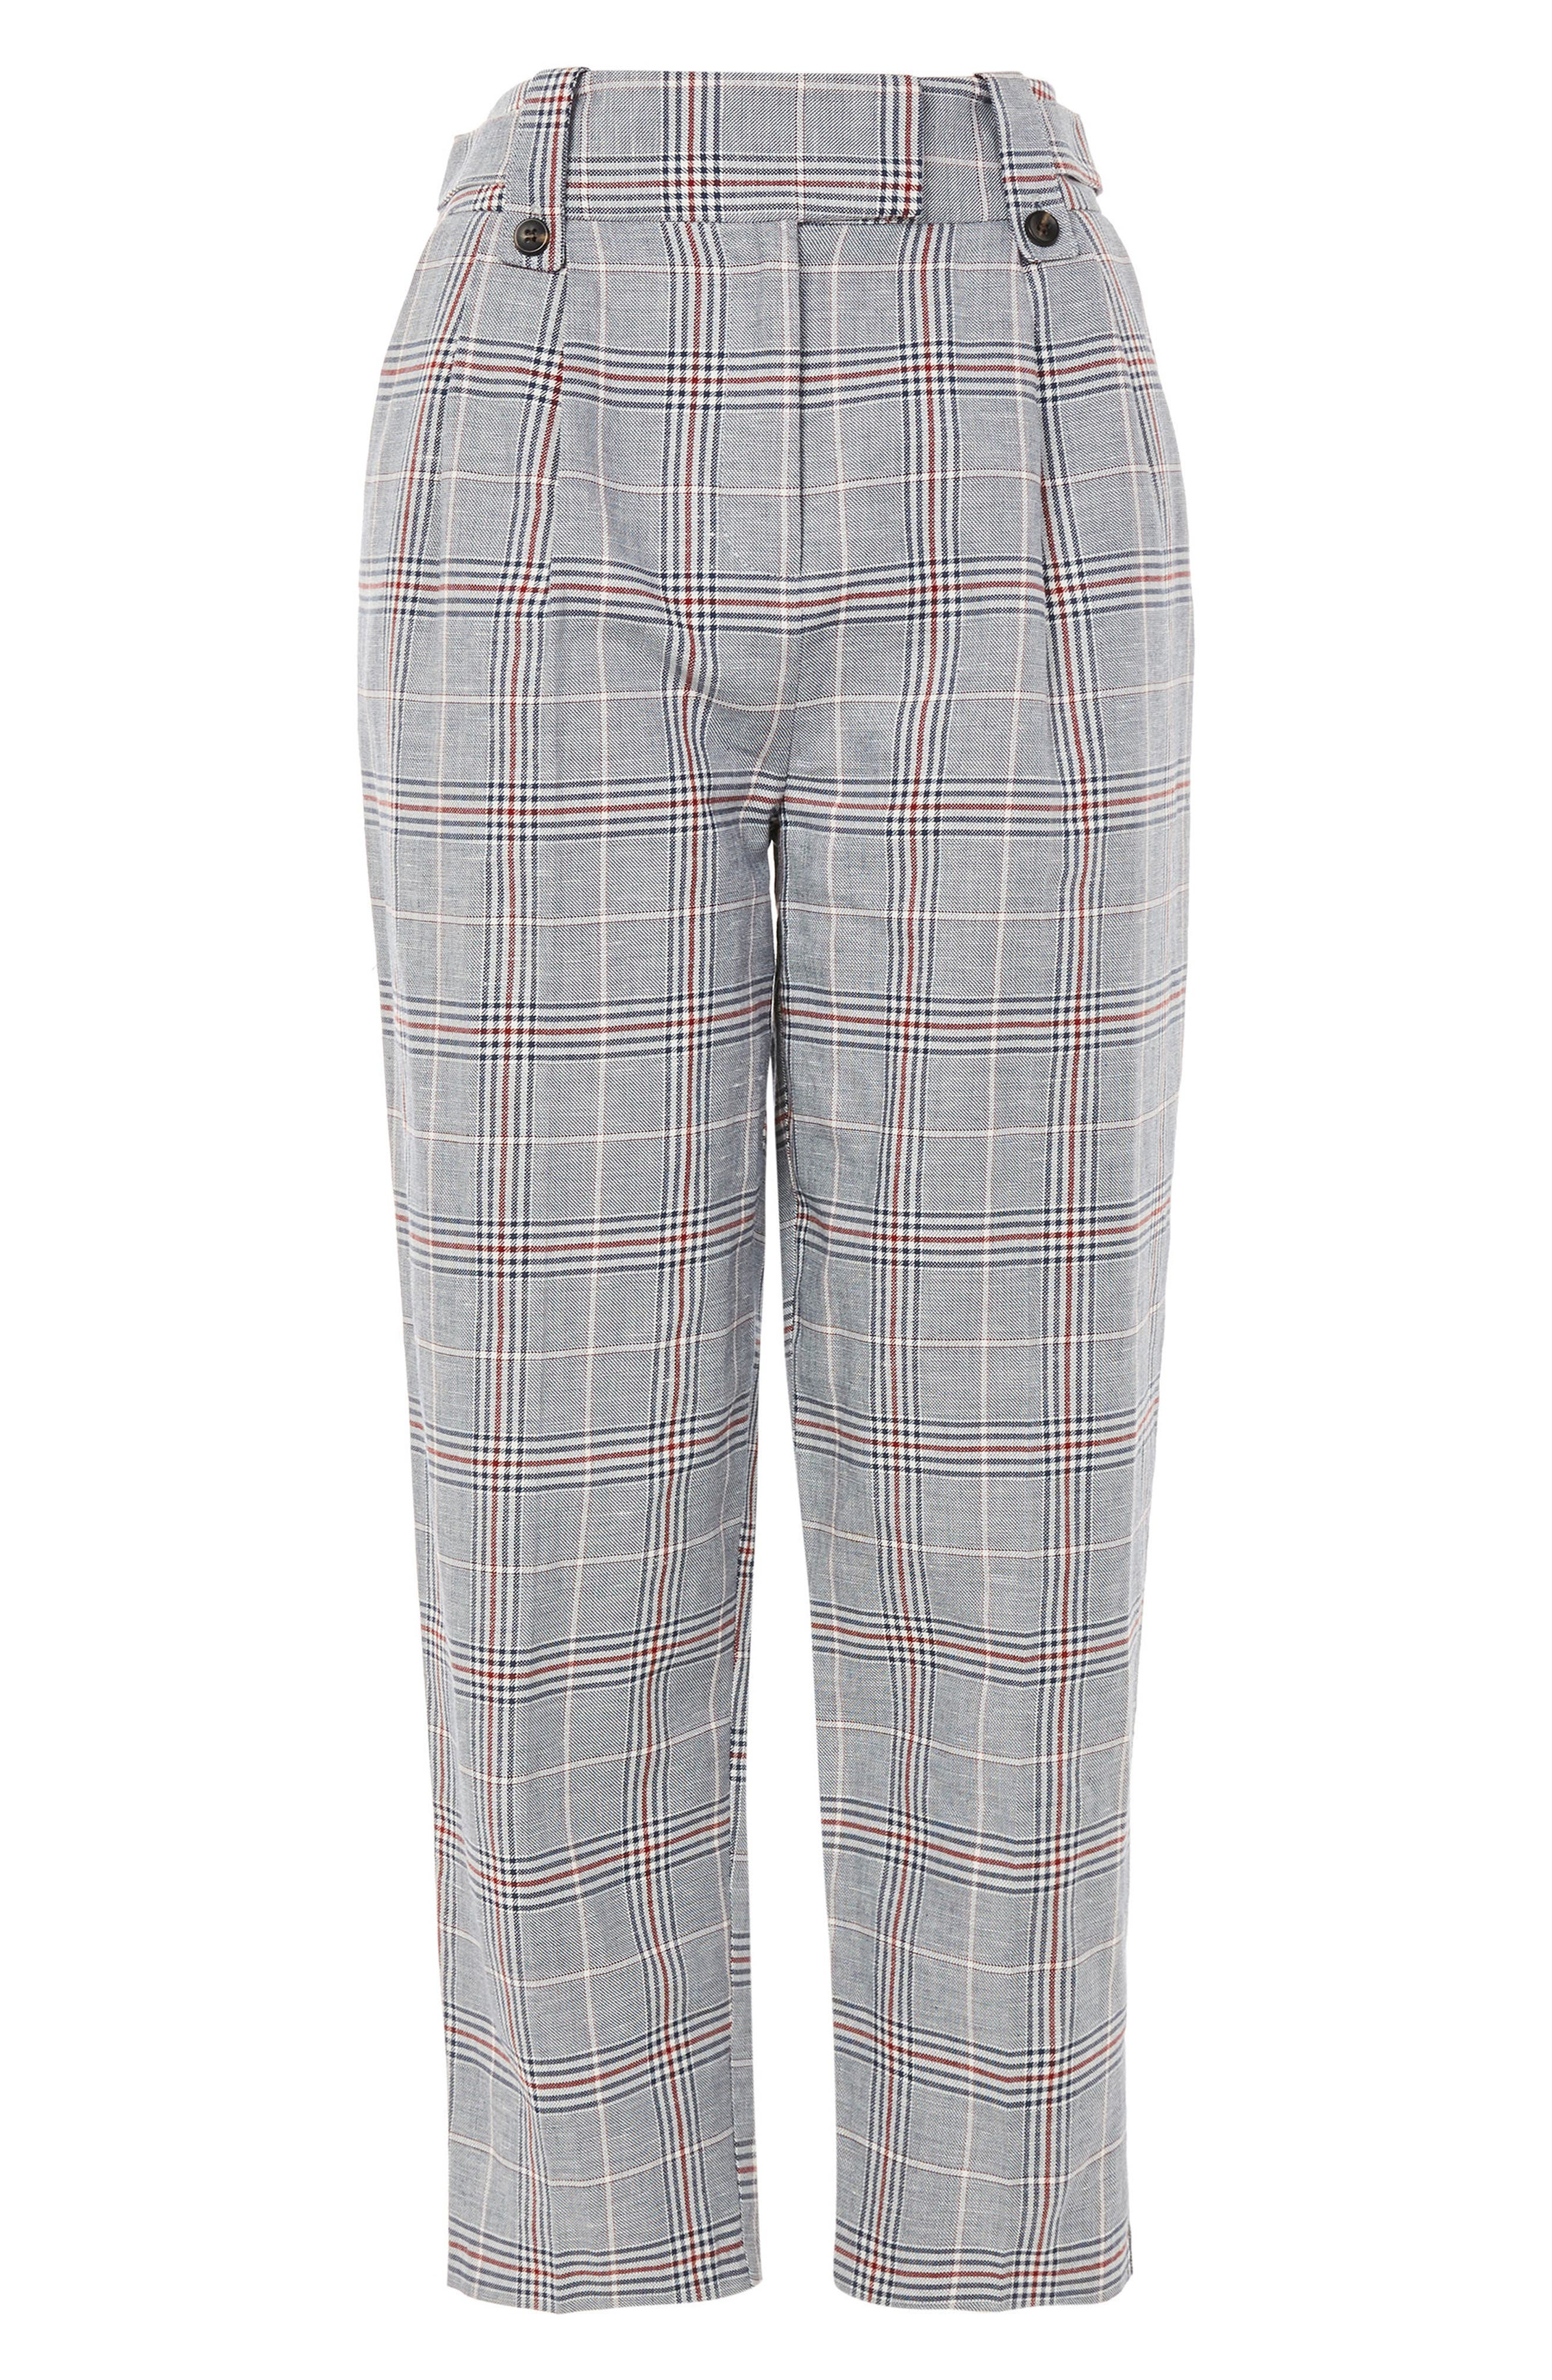 Cham Linen Checked Trousers,                             Alternate thumbnail 4, color,